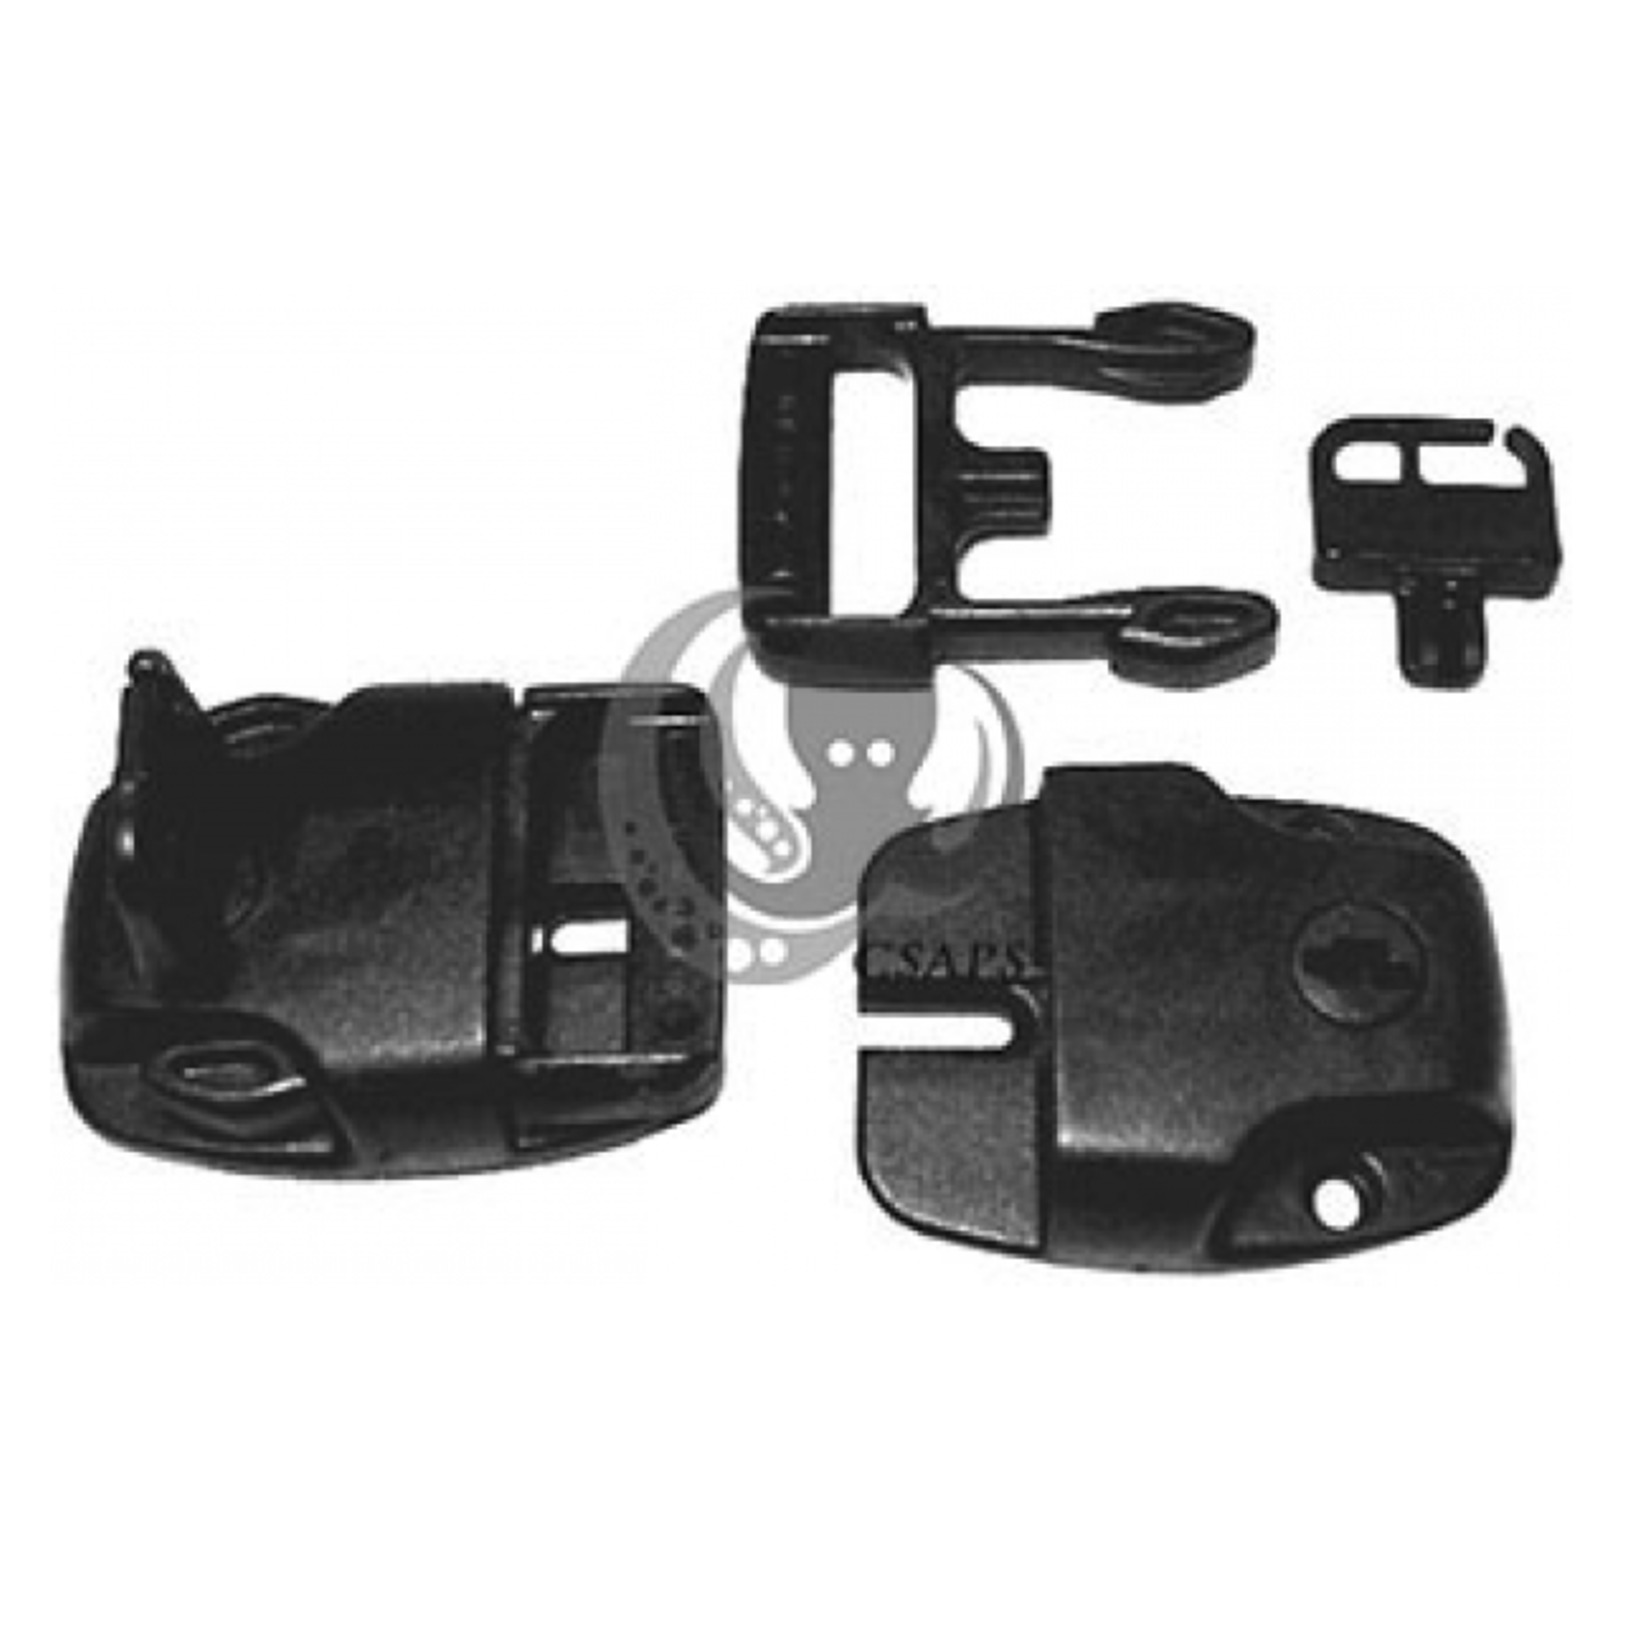 COVER LOCK KIT, SET OF TWO